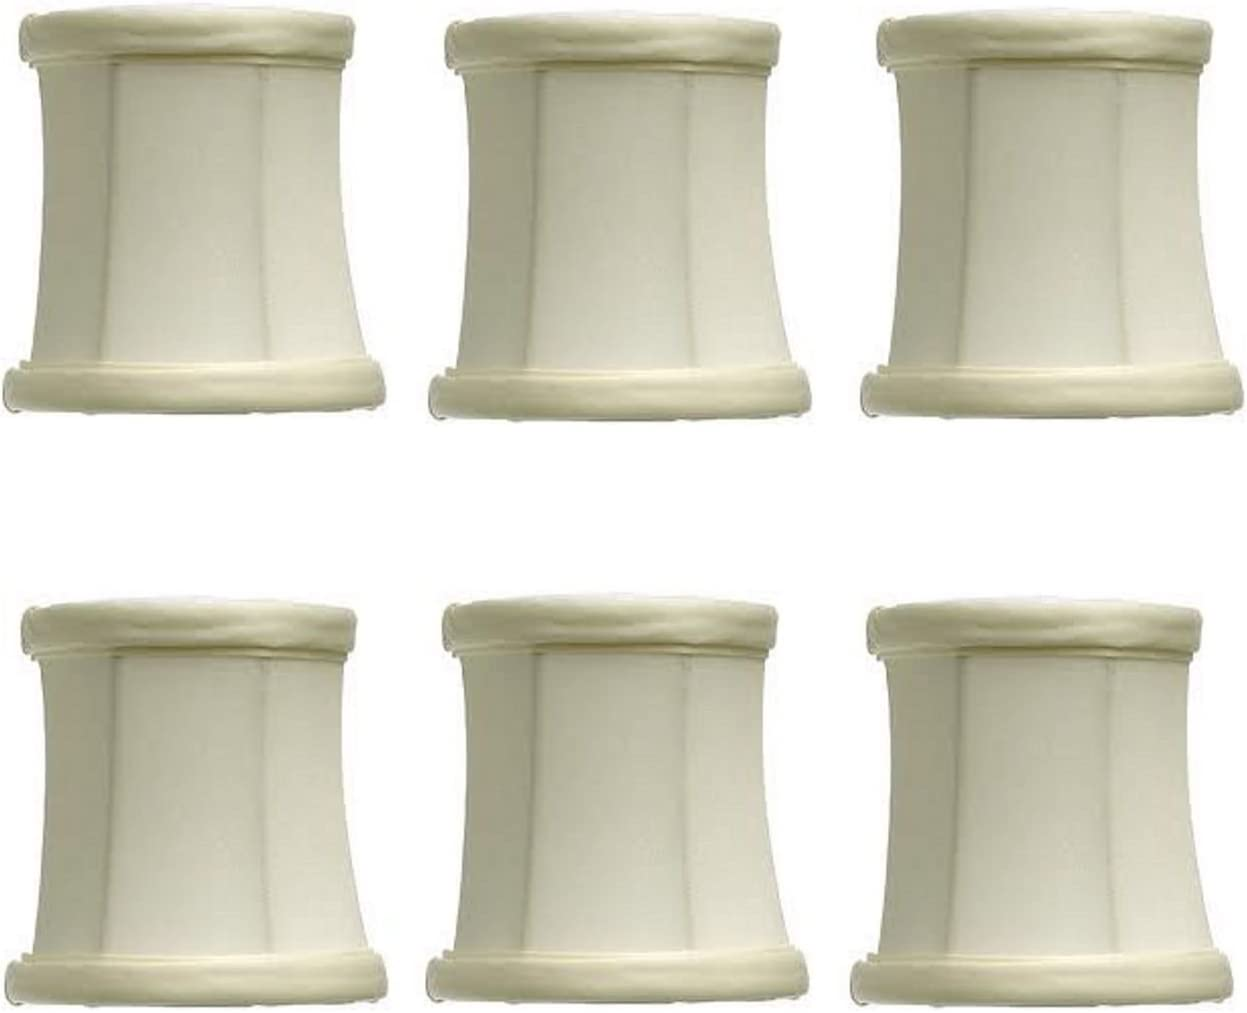 Upgradelights Eggshell Silk Mini Today's only Drum On Chandelier Inch 3 Super-cheap Clip